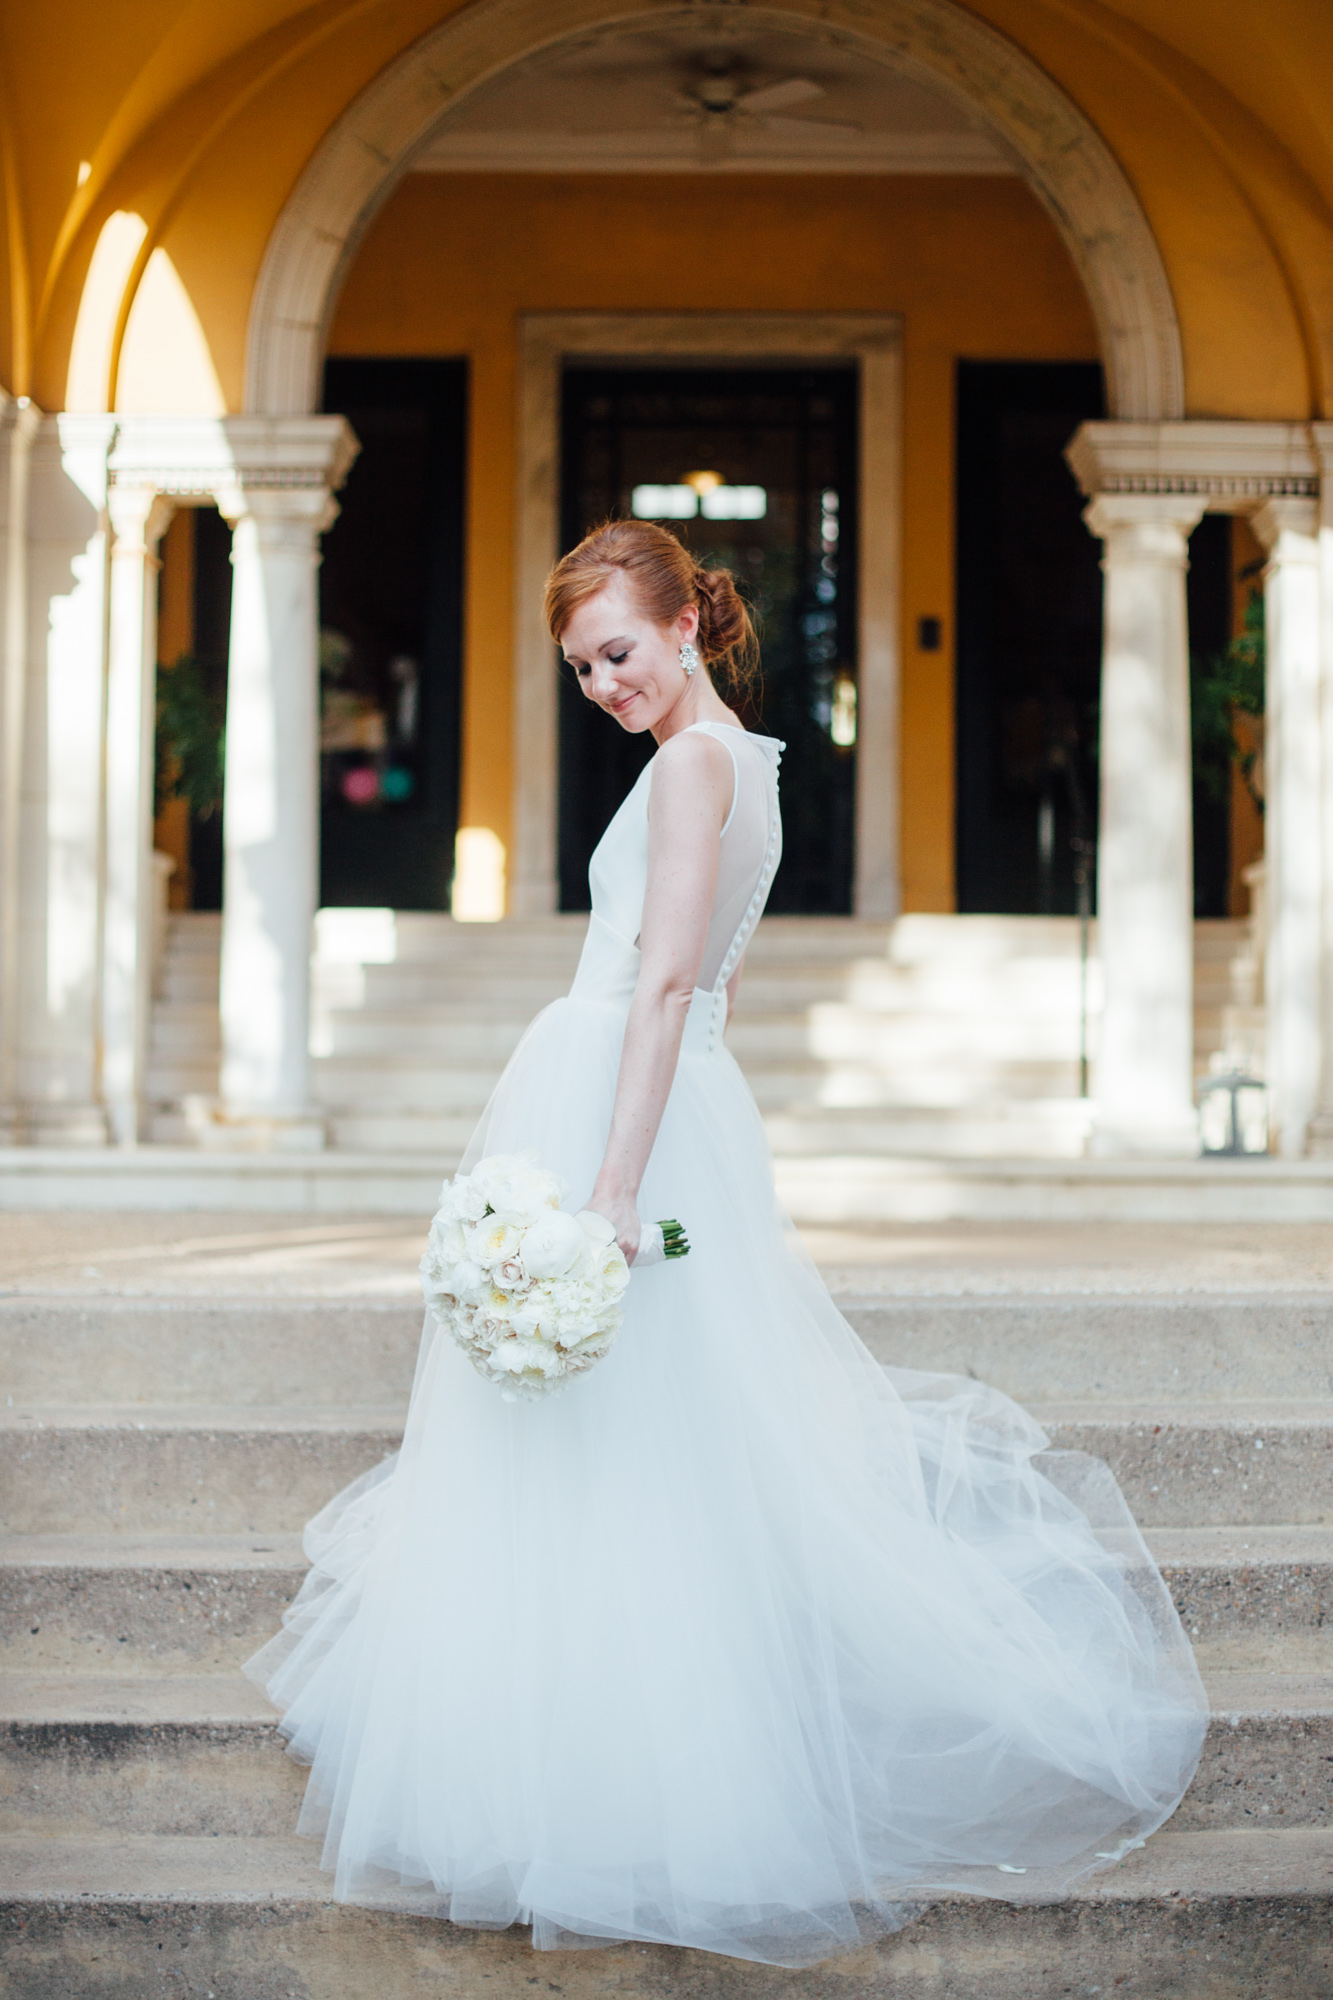 SarahMattozziPhotography-BlackTieWedding-WashingtonDC-56.jpg